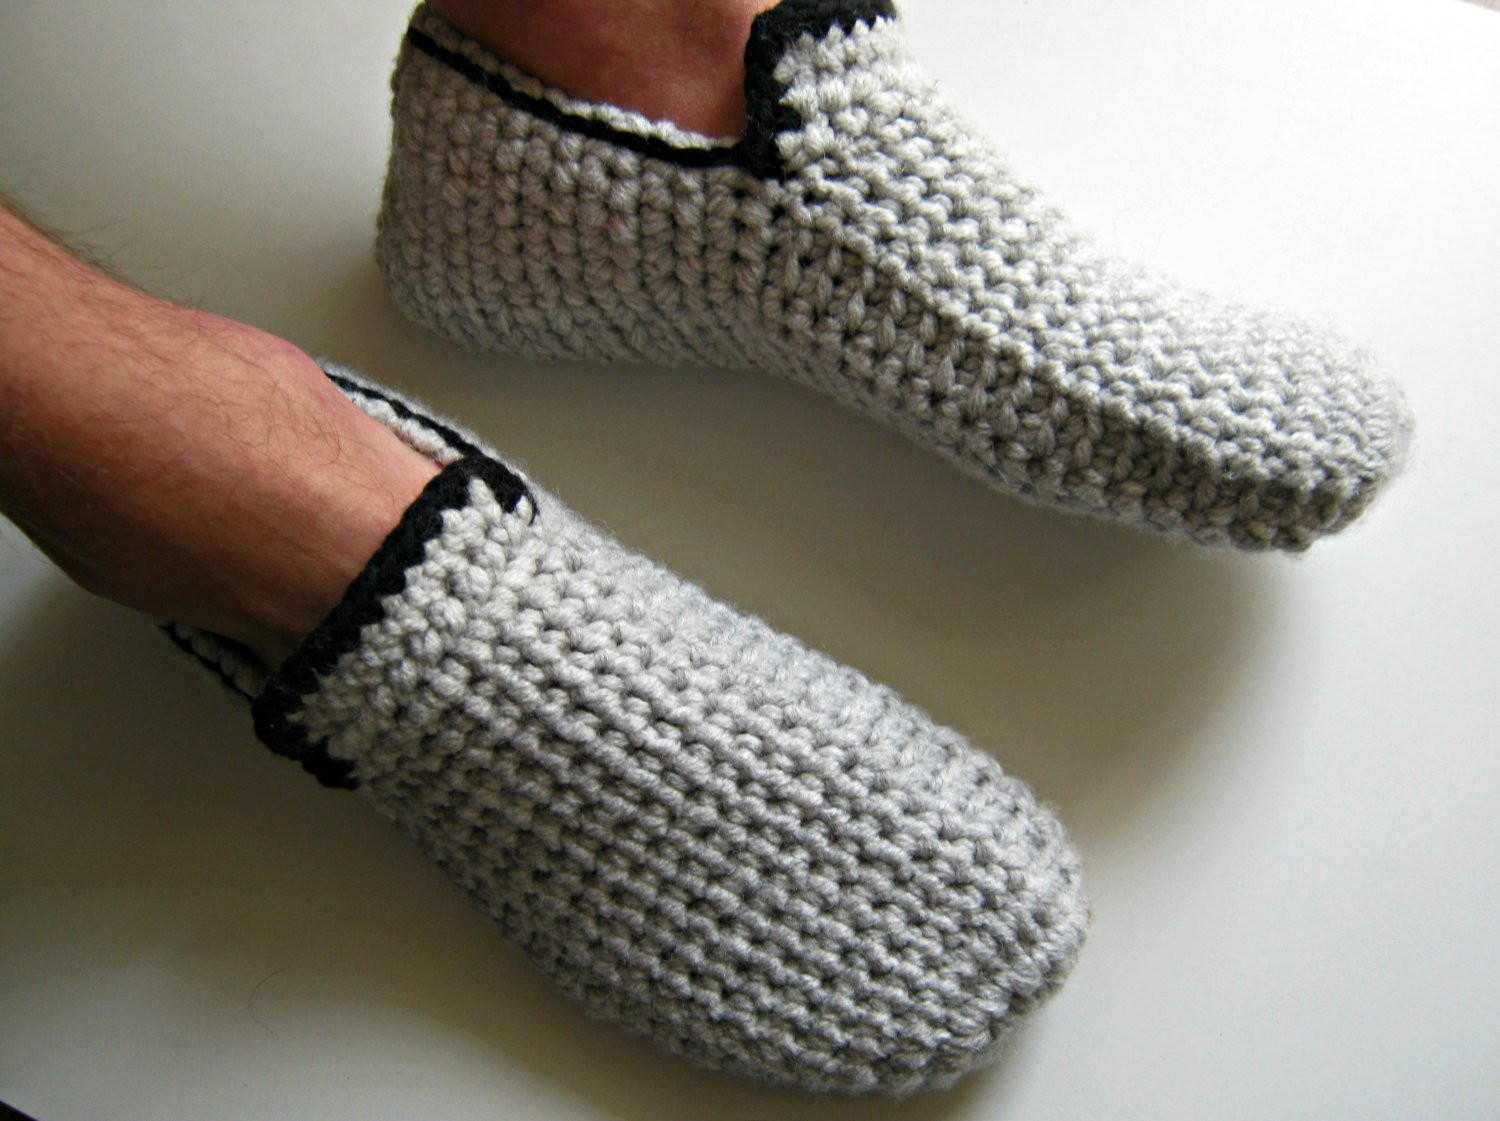 Crochet Gifts for Men Beautiful Gift for Men Crochet Slippers Mens Slippers House by Of Great 49 Pictures Crochet Gifts for Men